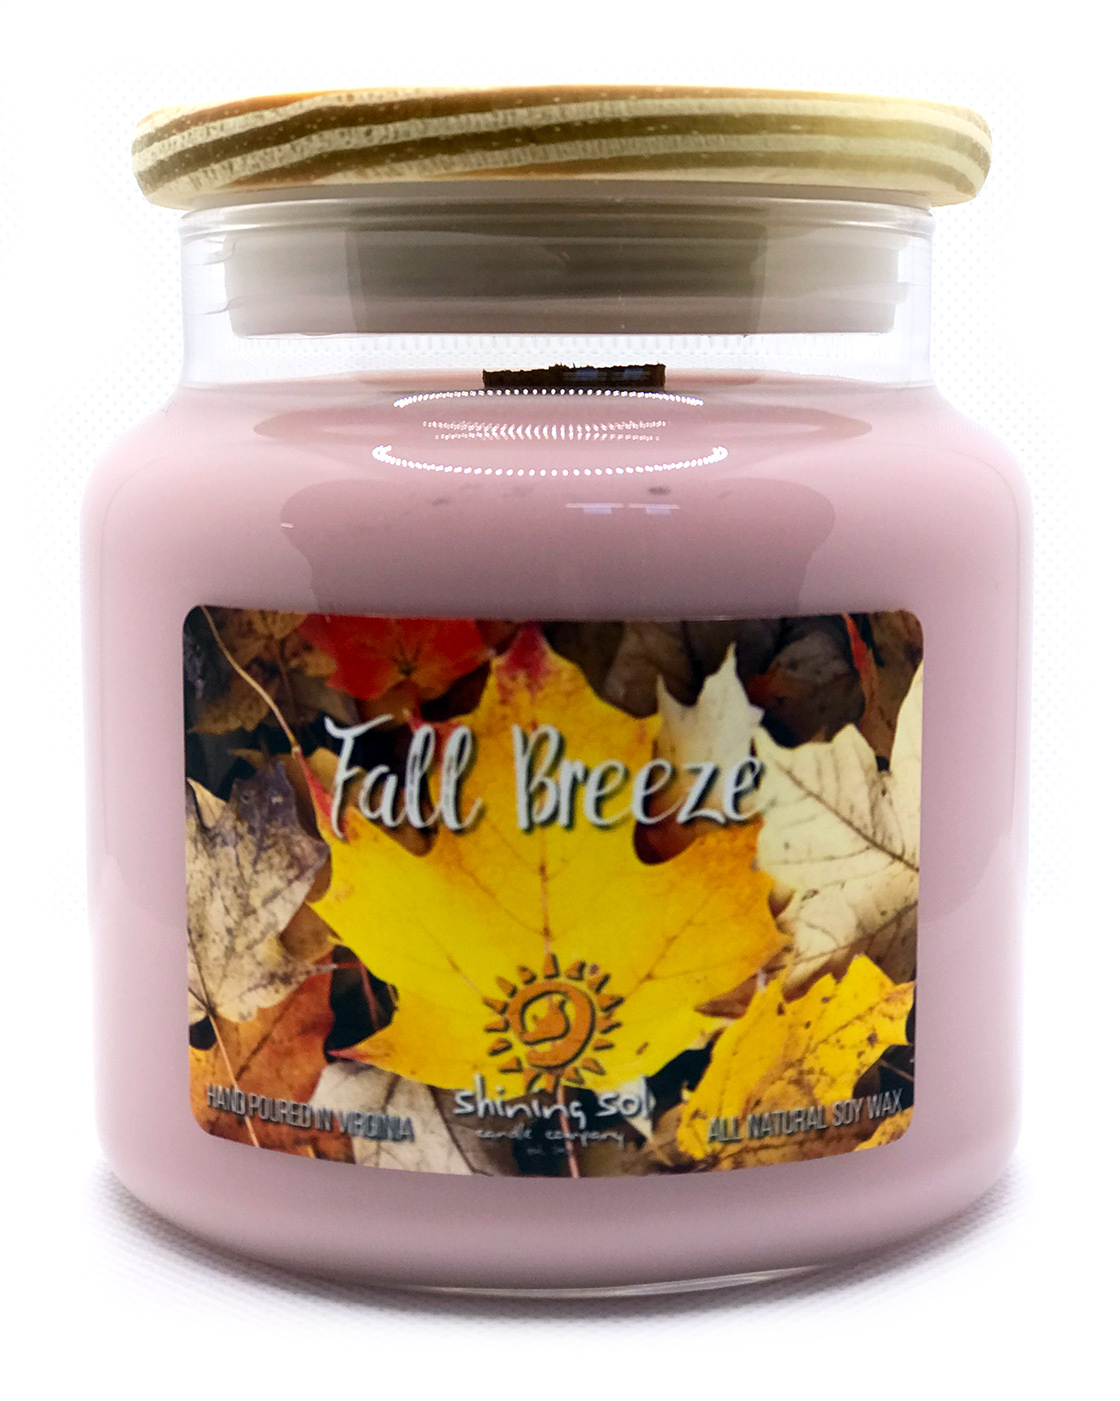 Fall Breeze - Large Jar Candle